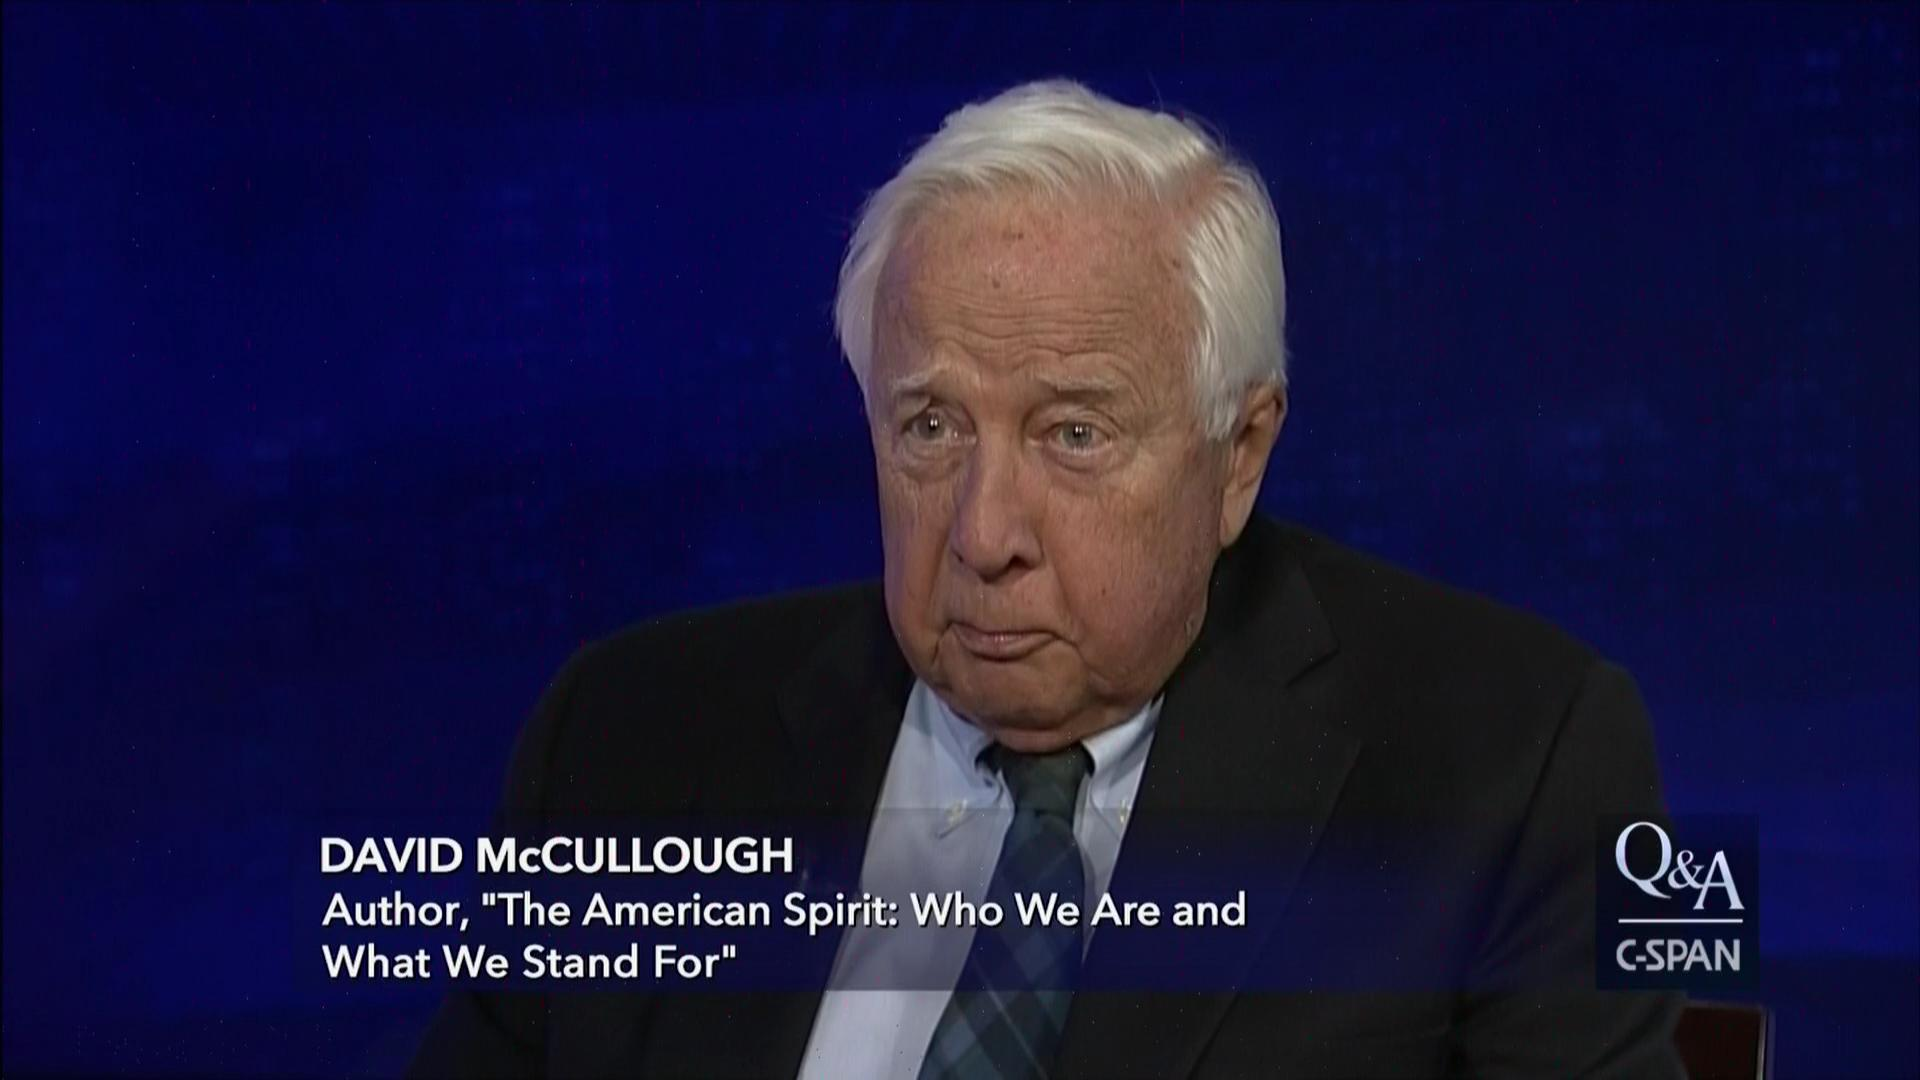 david mccullough political views